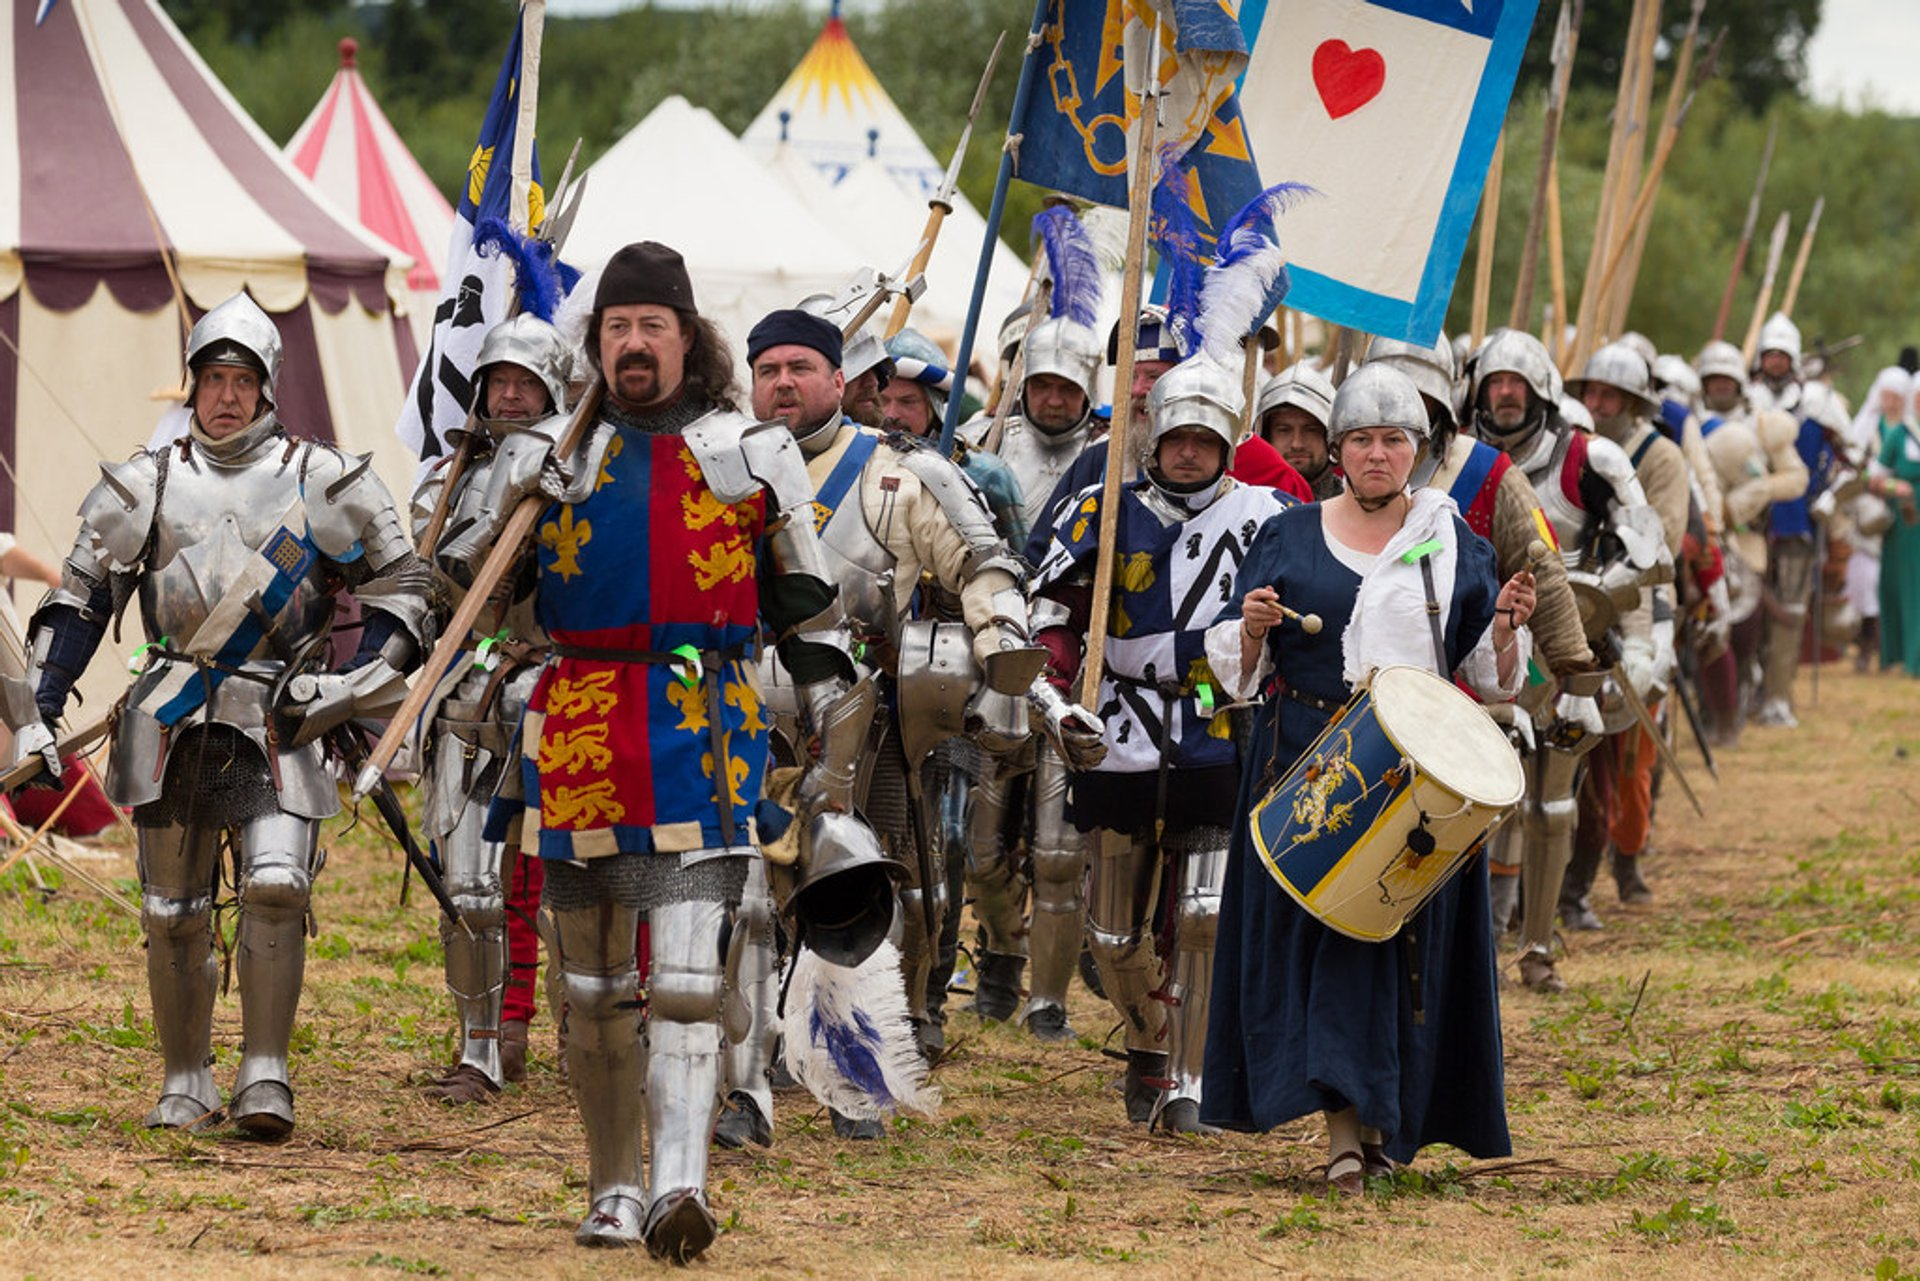 Tewkesbury Medieval Festival in England 2020 - Best Time